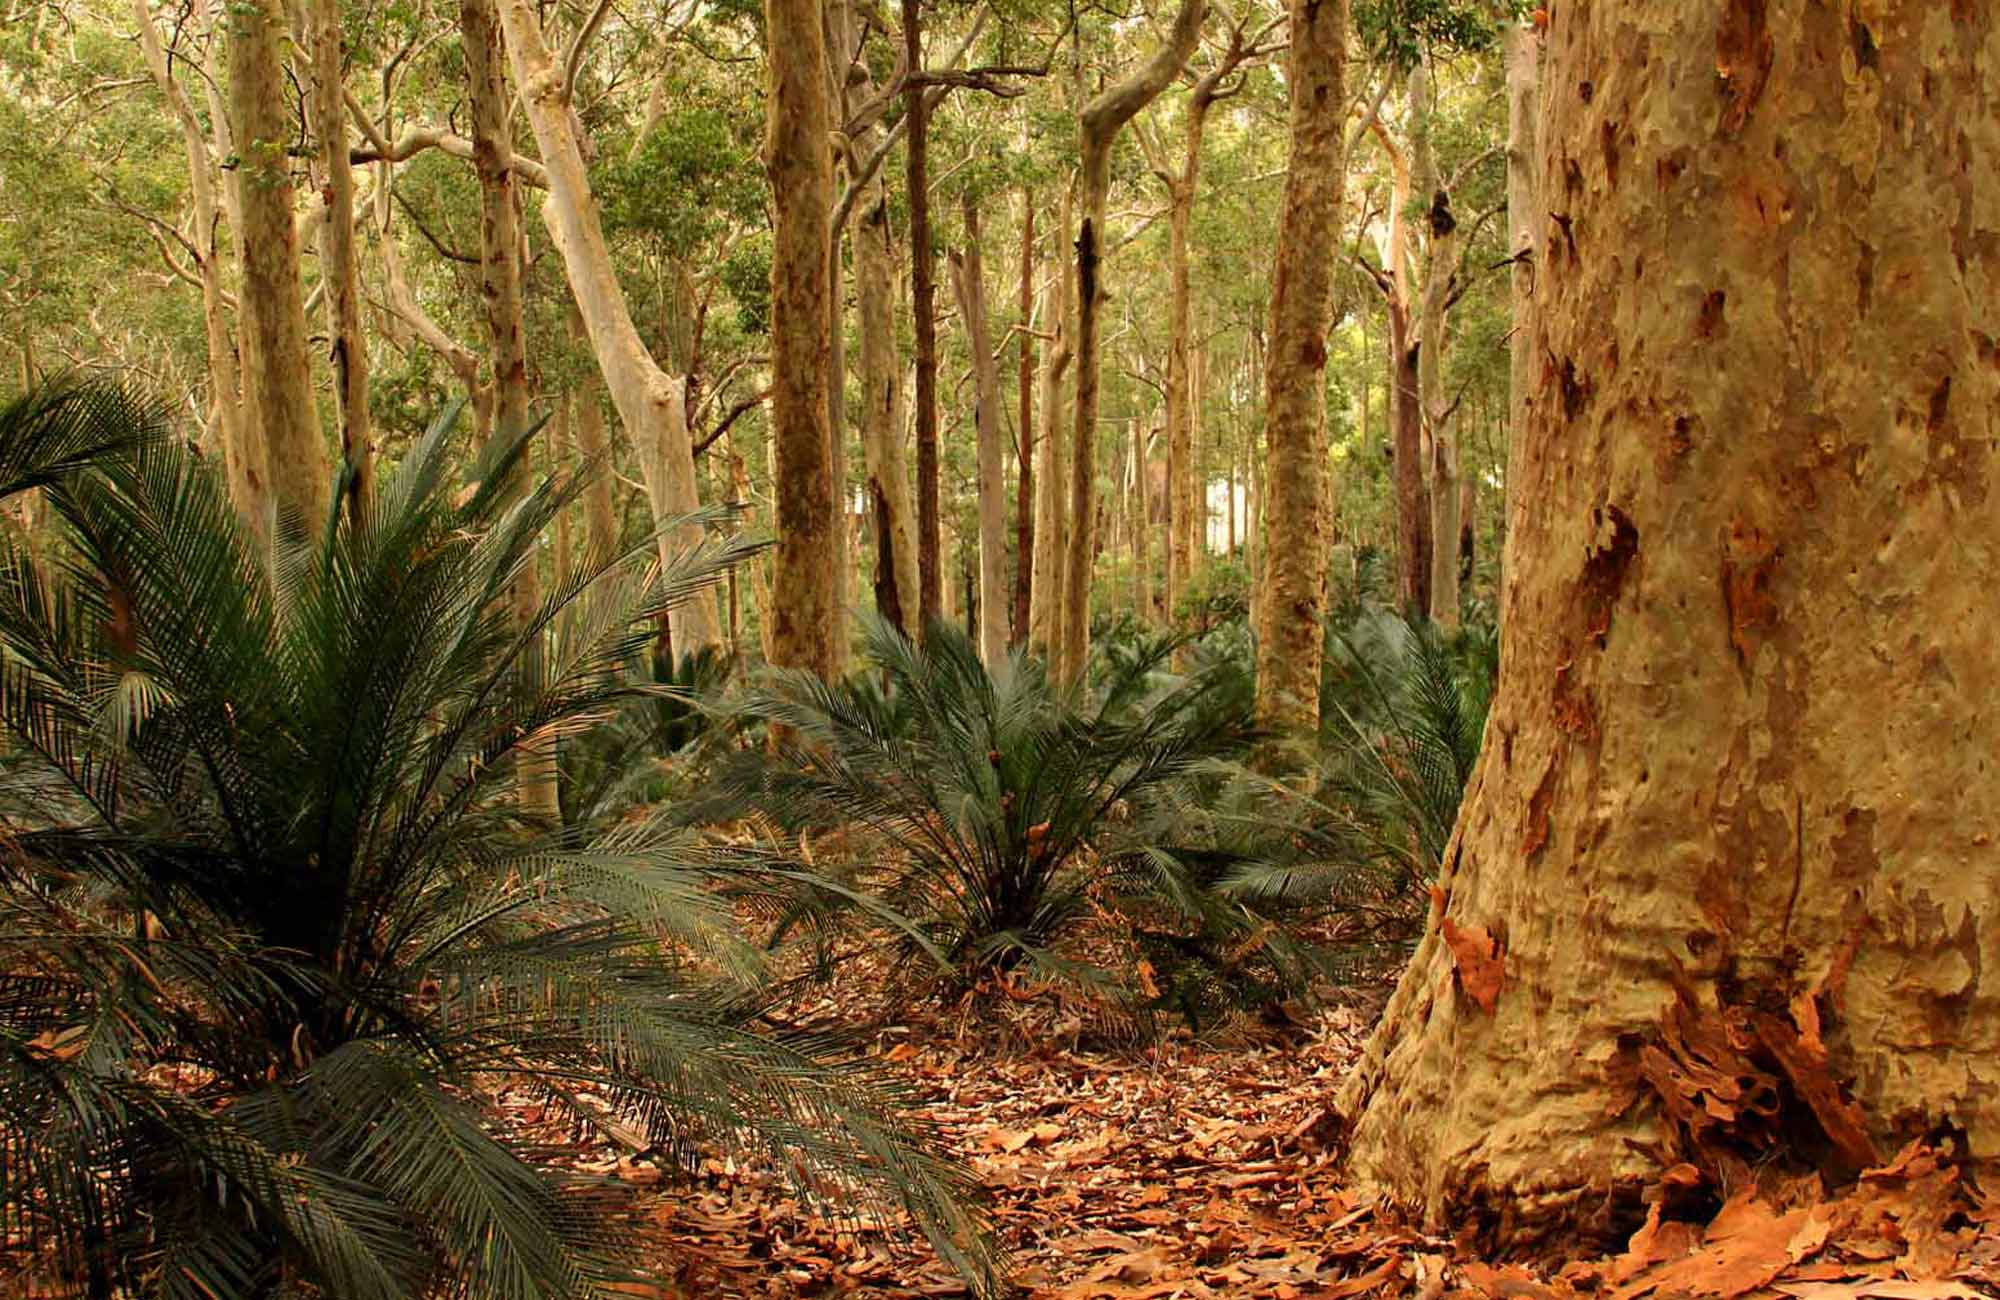 Burrawang Walk in Murramarang National Park. Photo: John Yurasek